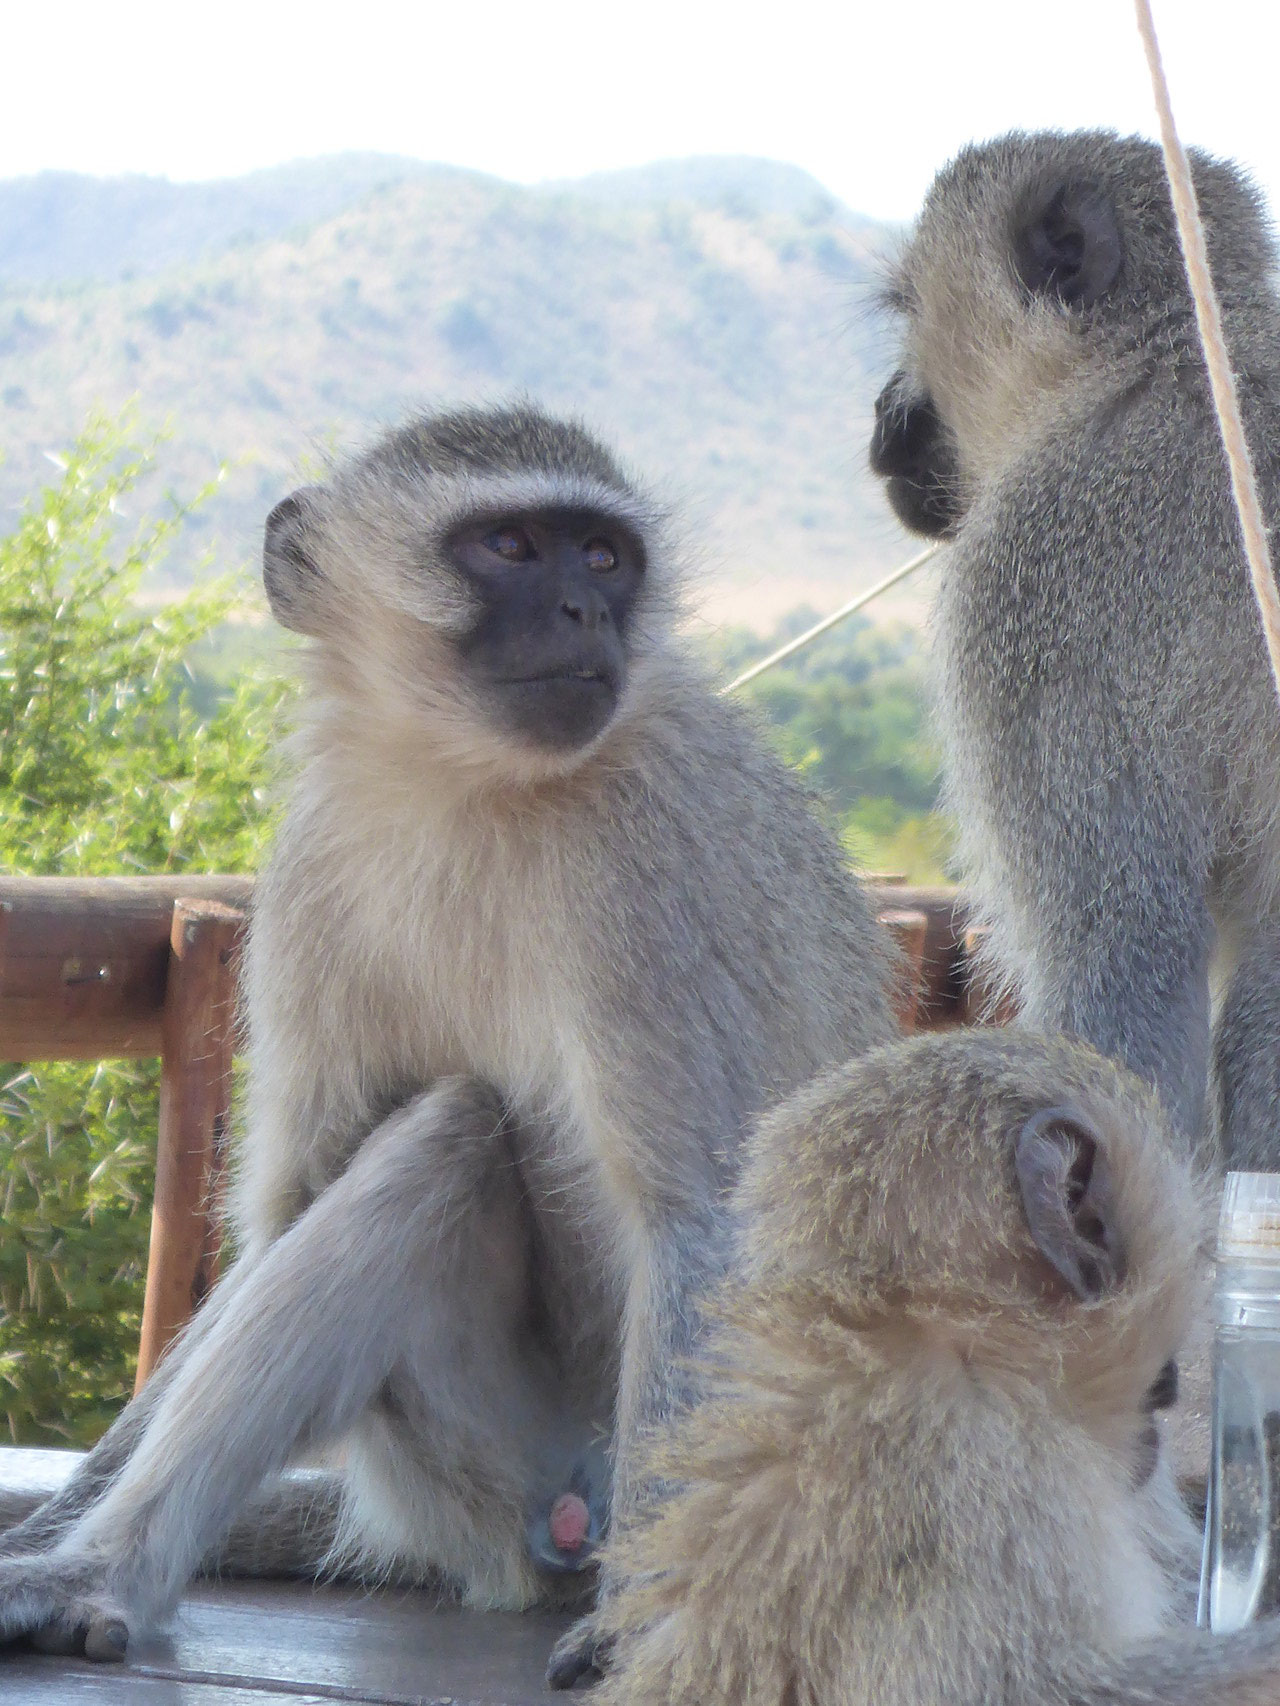 of course the monkeys shouldn't miss at the restaurant #shopping in da bush